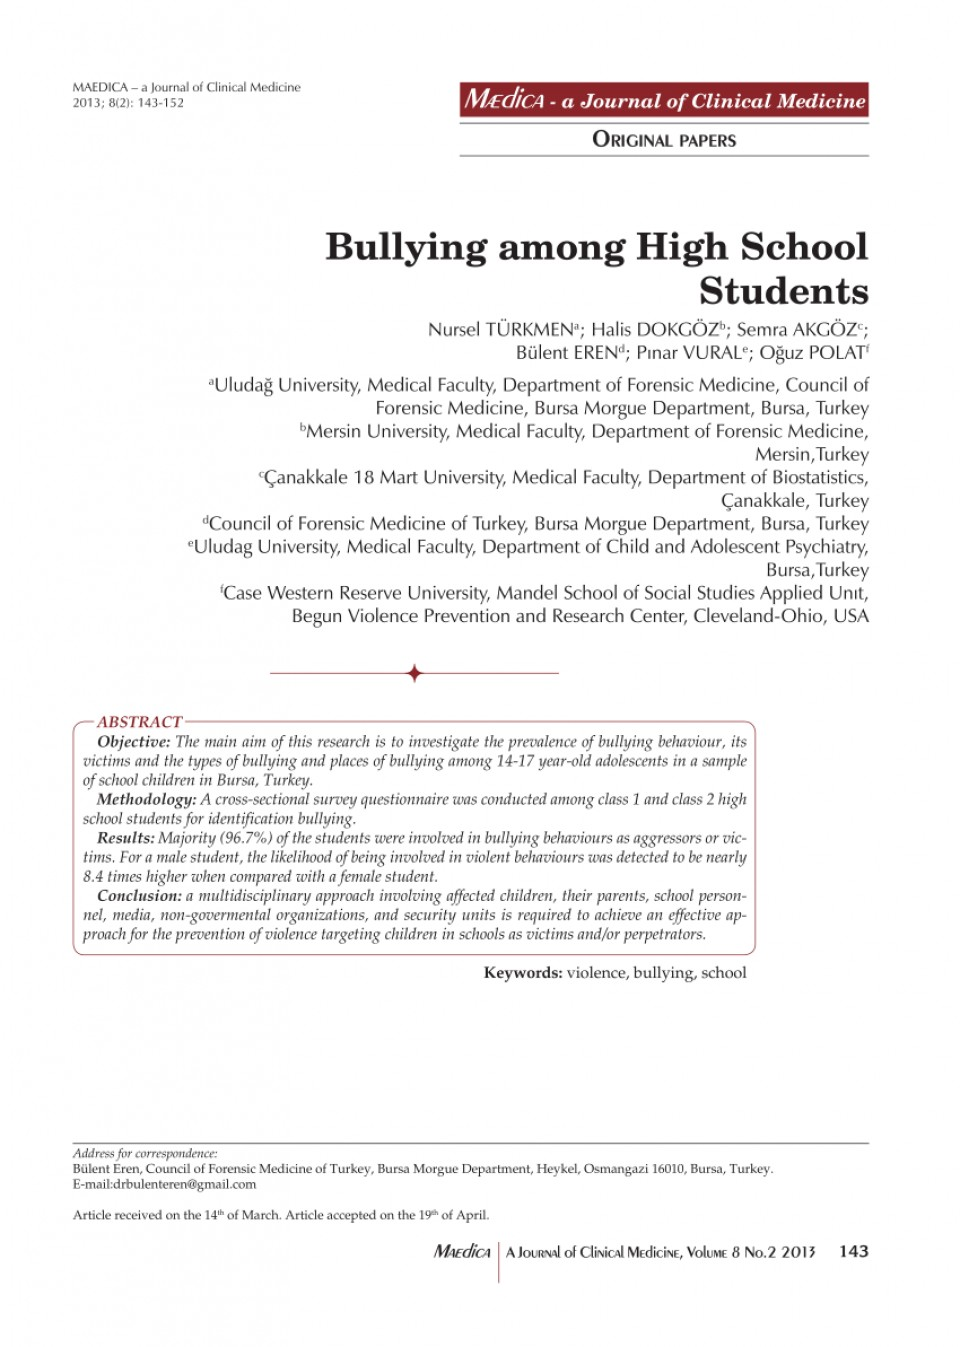 001 Largepreview Bullying Research Paper Imposing Pdf Short About Quantitative Effects Of 960